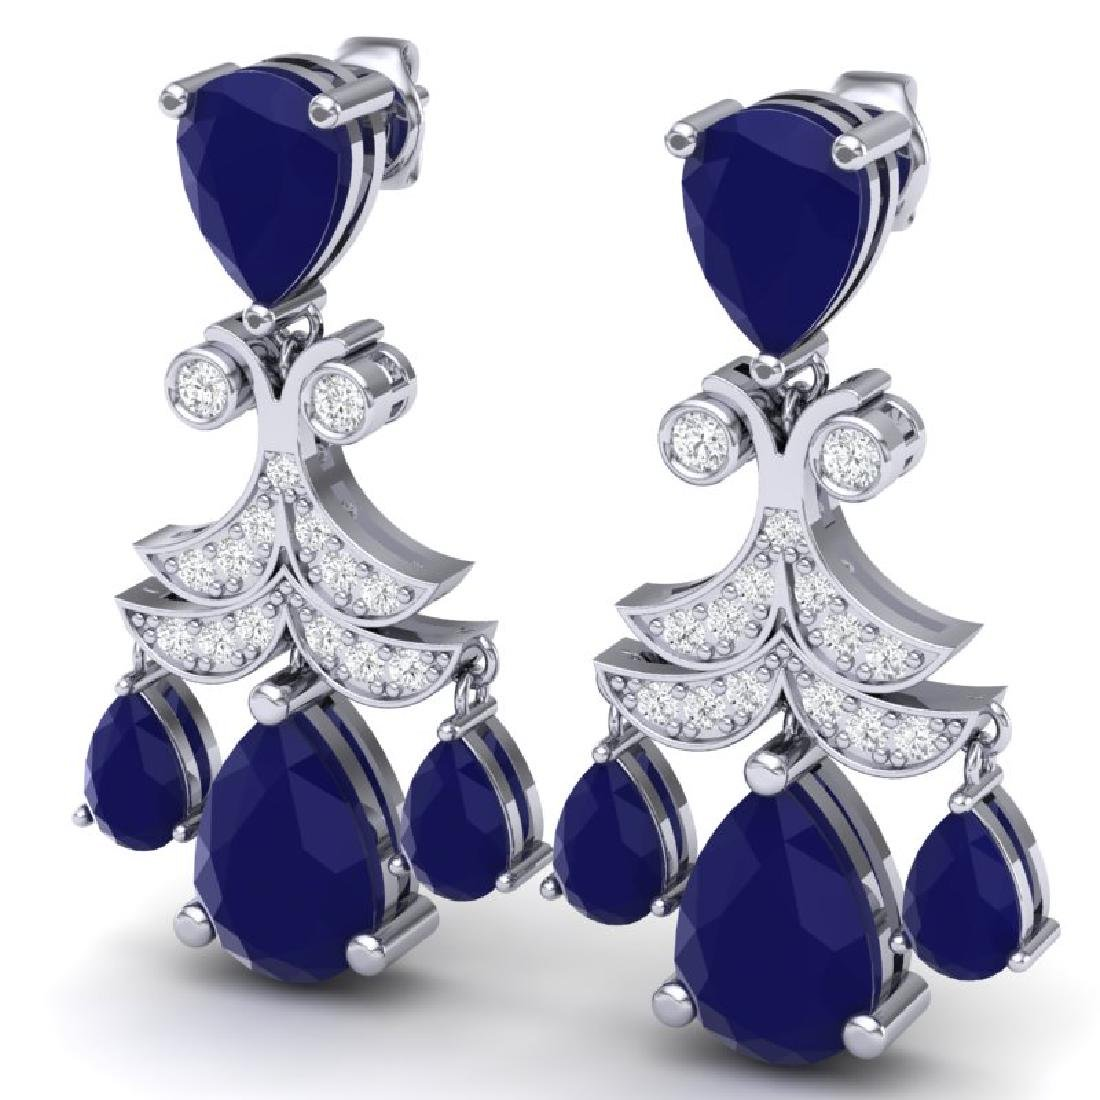 11.97 CTW Royalty Sapphire & VS Diamond Earrings 18K - 2